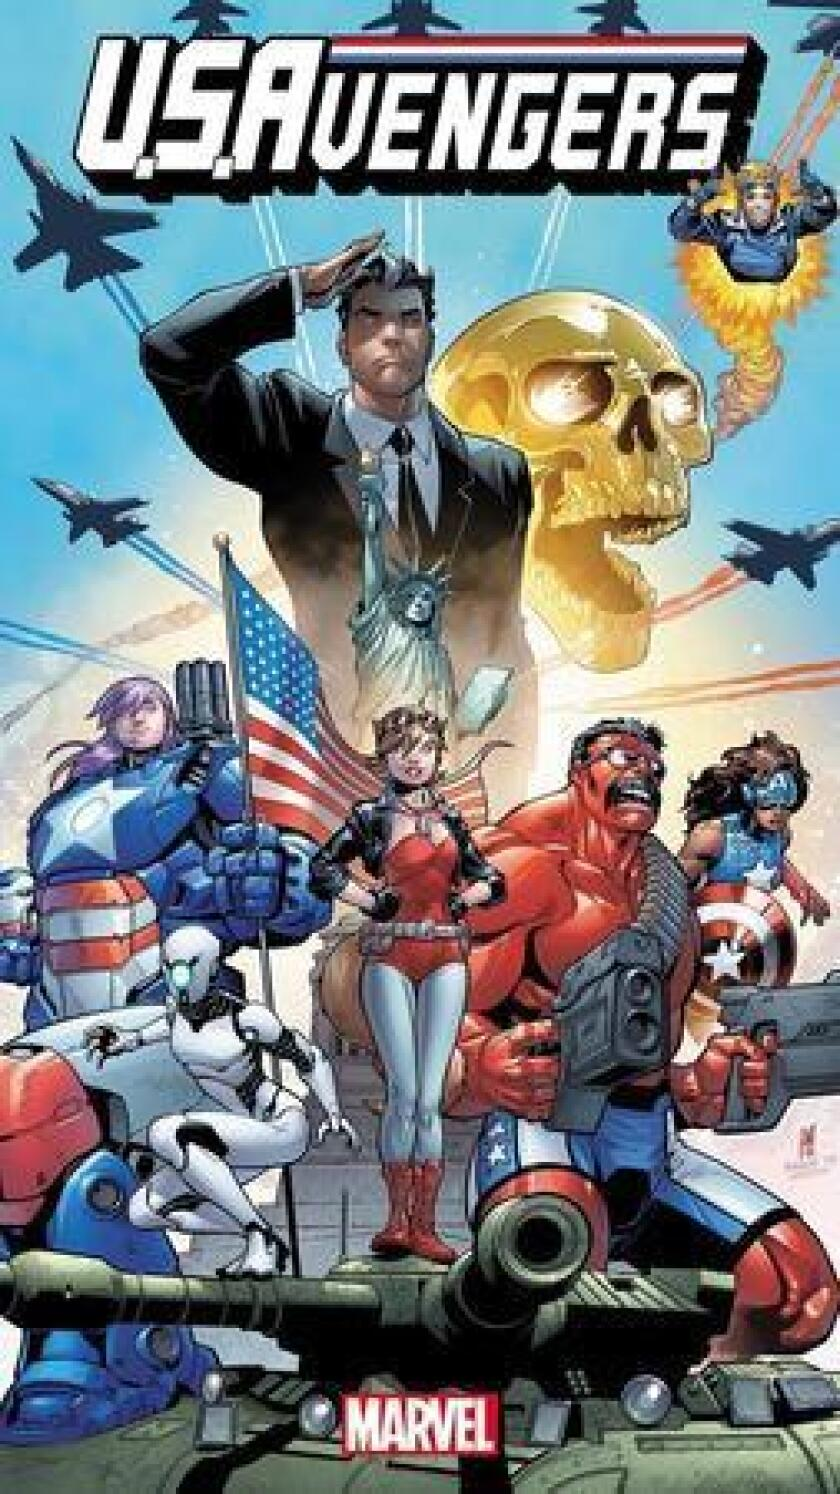 pac-sddsd-marvel-comics-will-debut-some-20160819